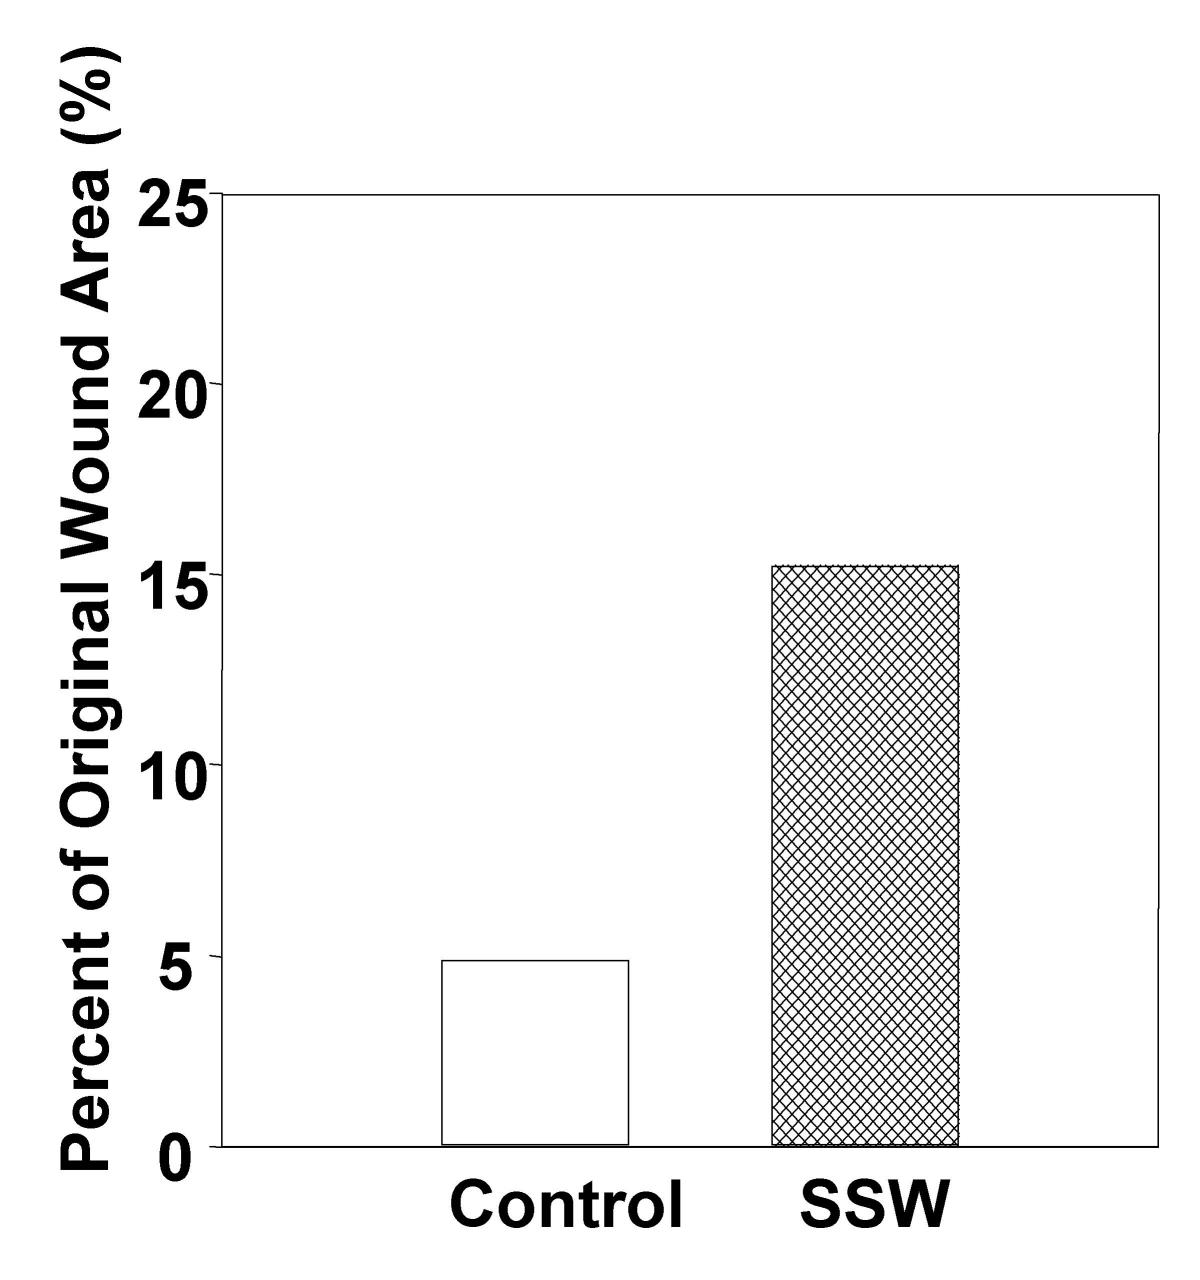 https://static-content.springer.com/image/art%3A10.1186%2F1471-2121-5-13/MediaObjects/12860_2003_Article_89_Fig10_HTML.jpg